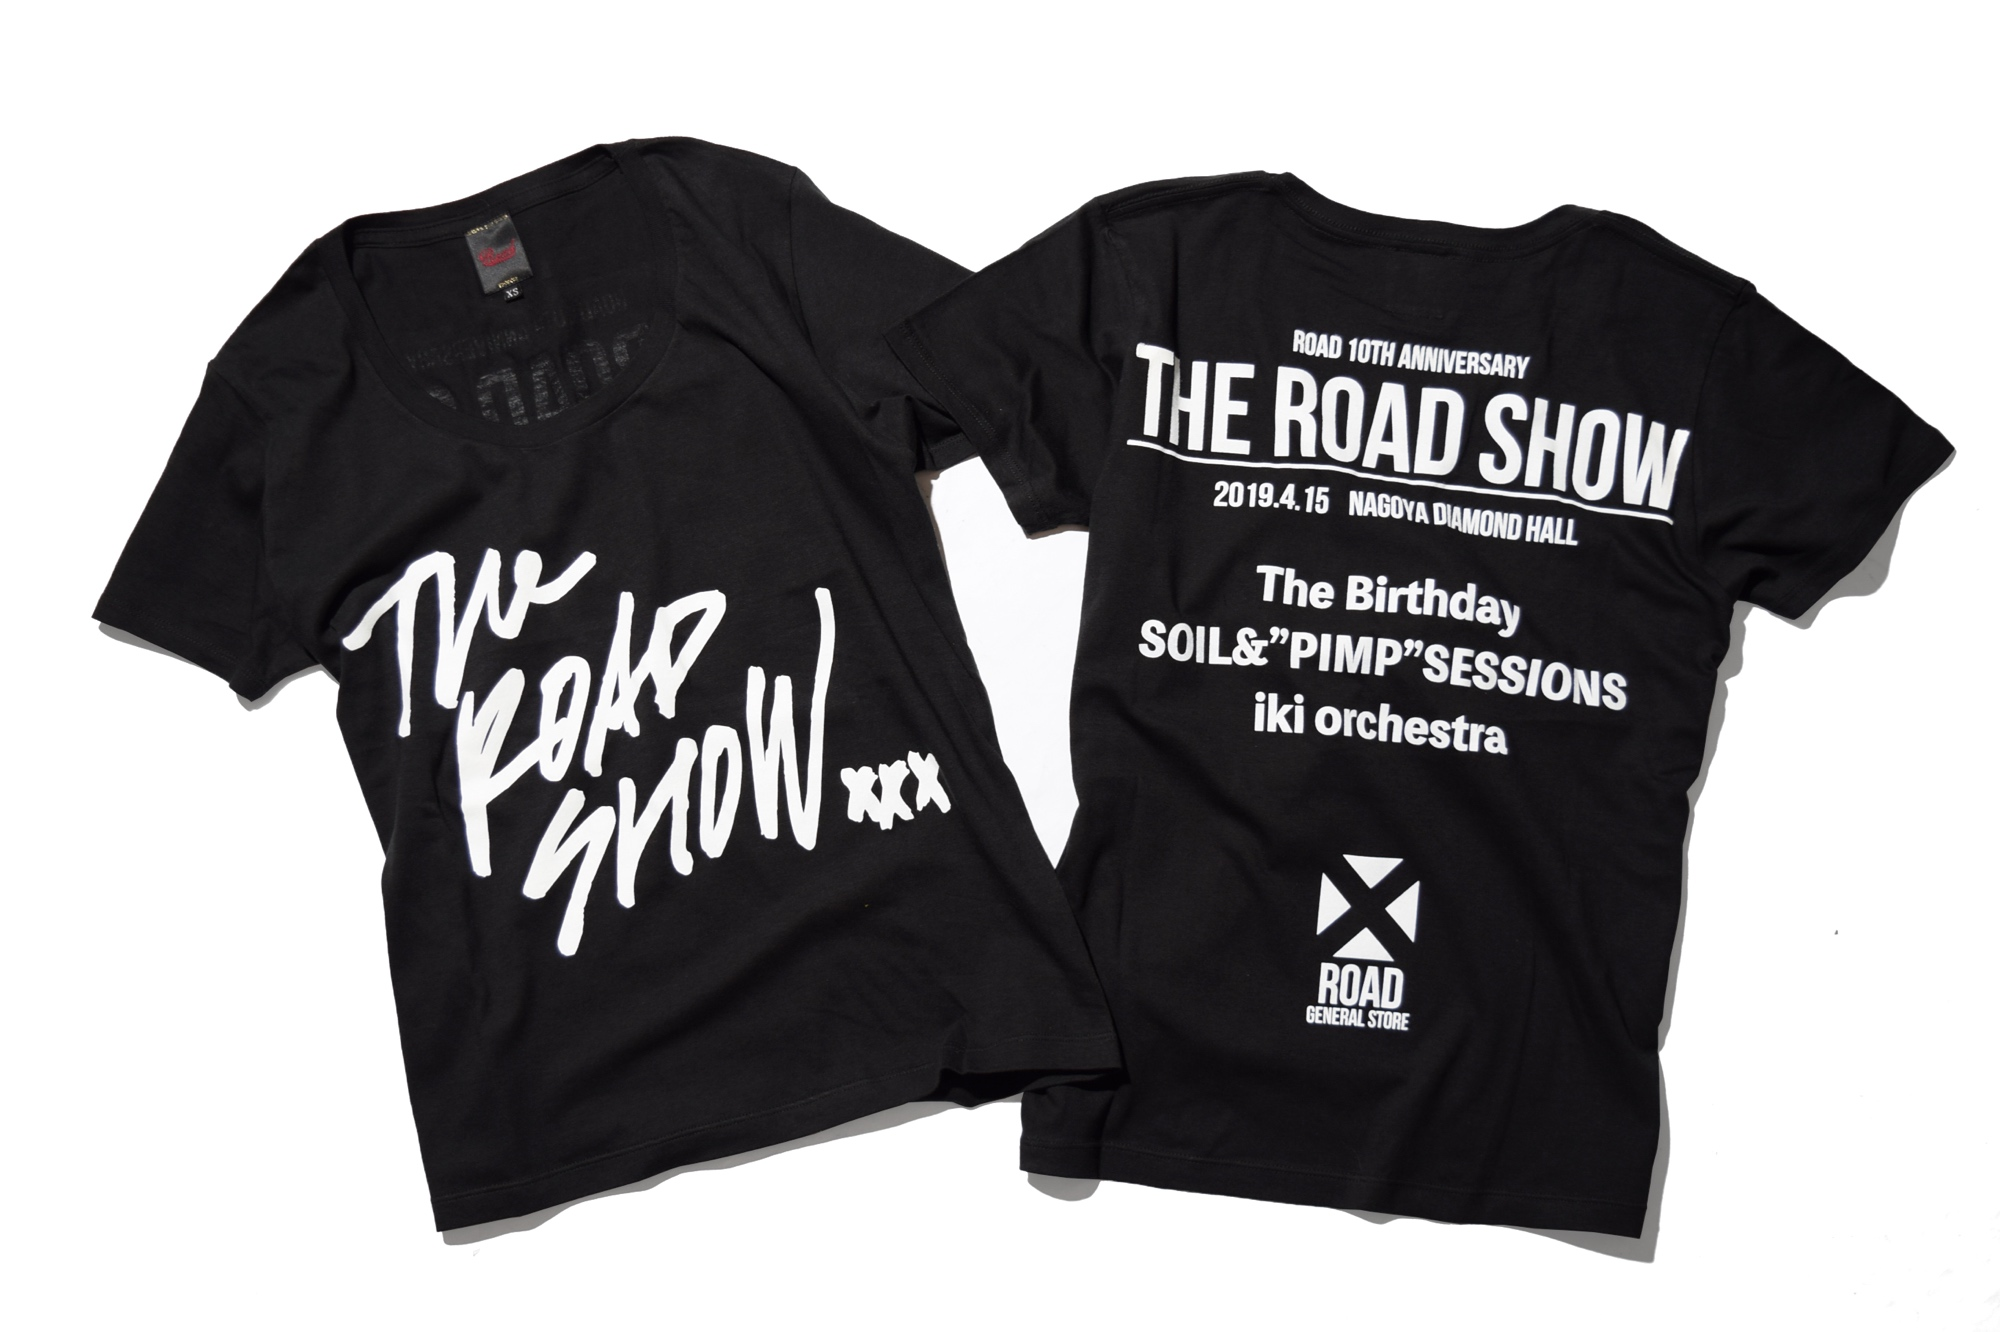 THE ROAD SHOW GOODS